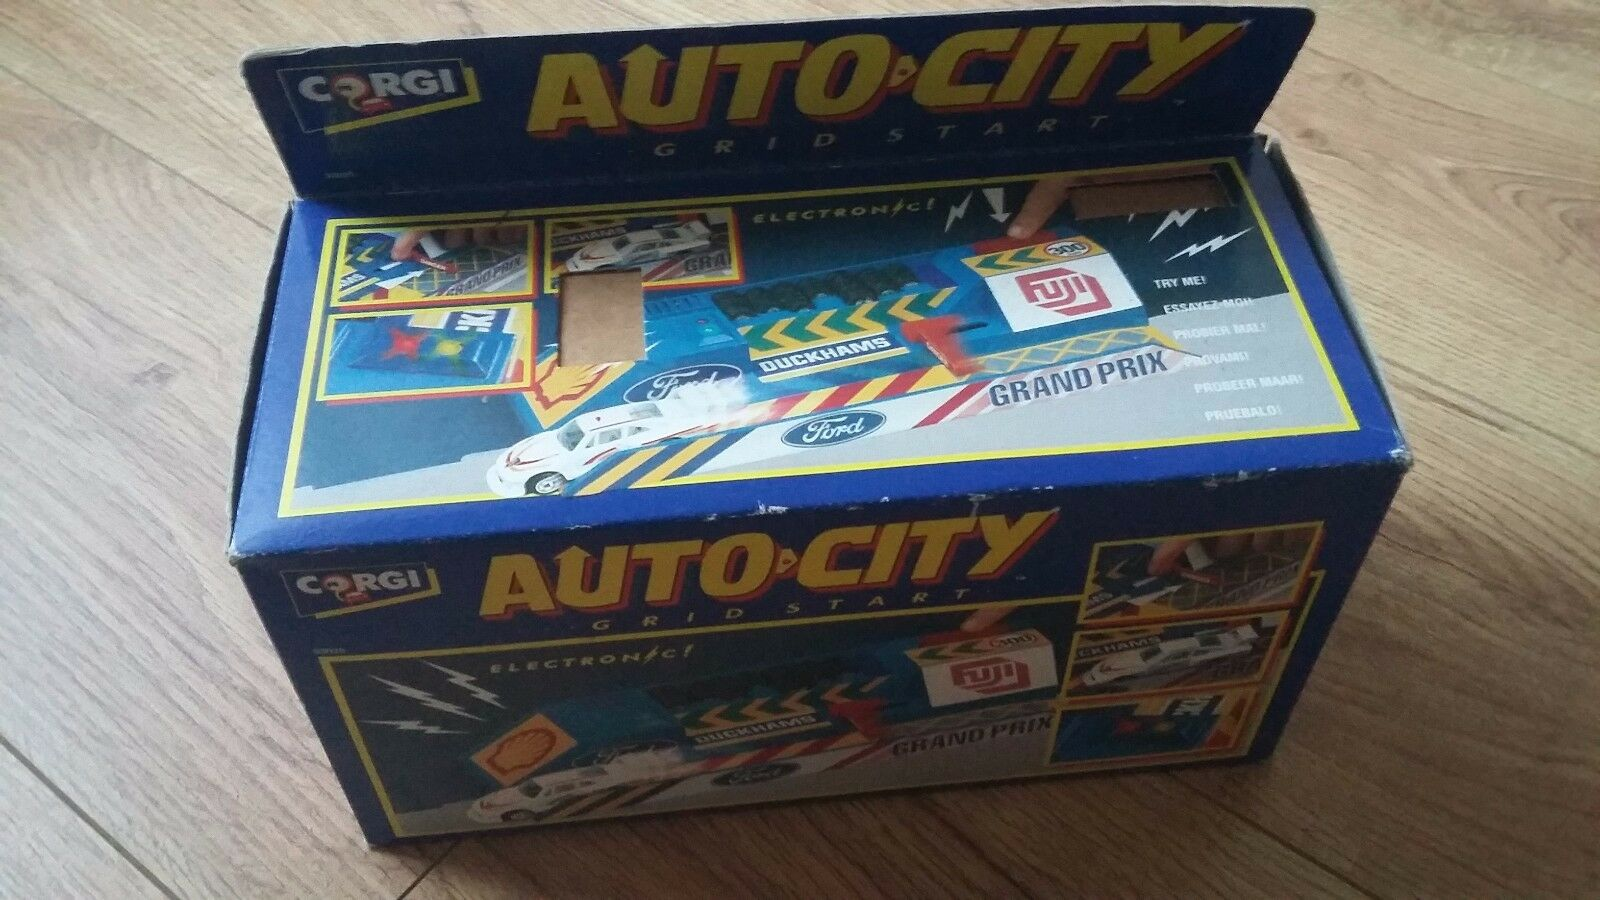 Corgi Auto City Grid Start Electronic starter Box Set 93025 1992 Vintage